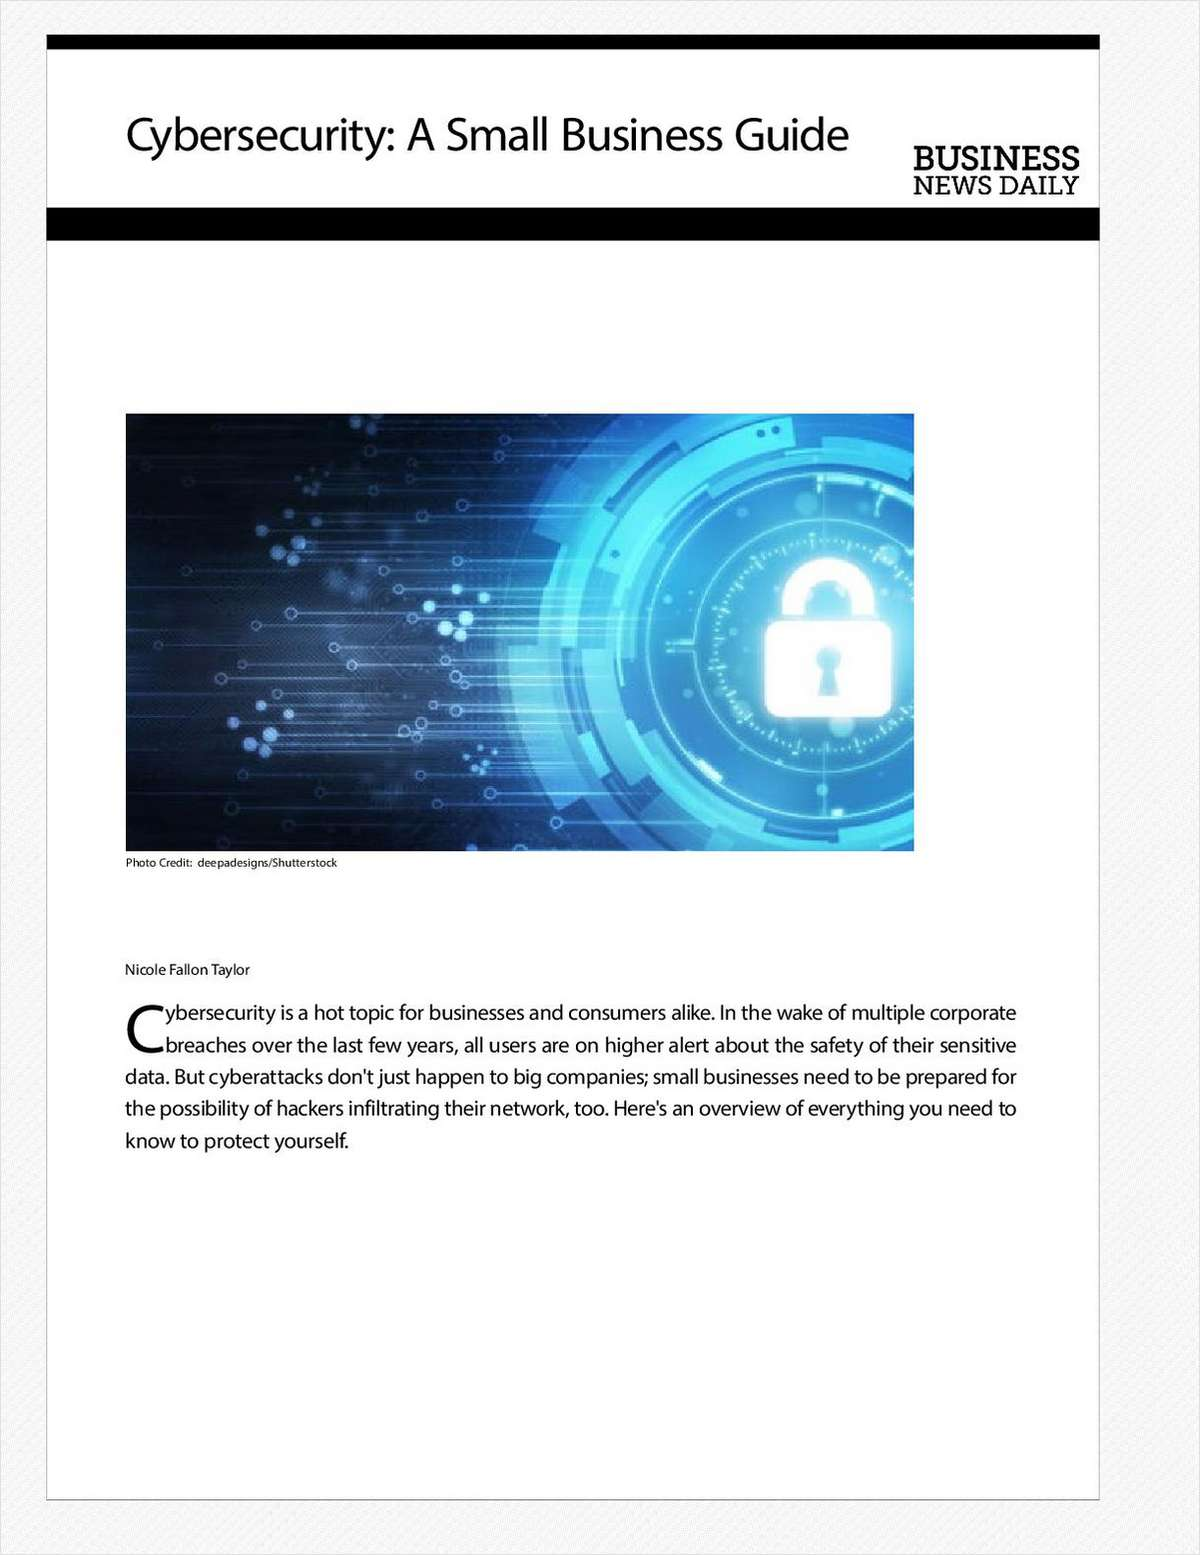 Cybersecurity: A Small Business Guide